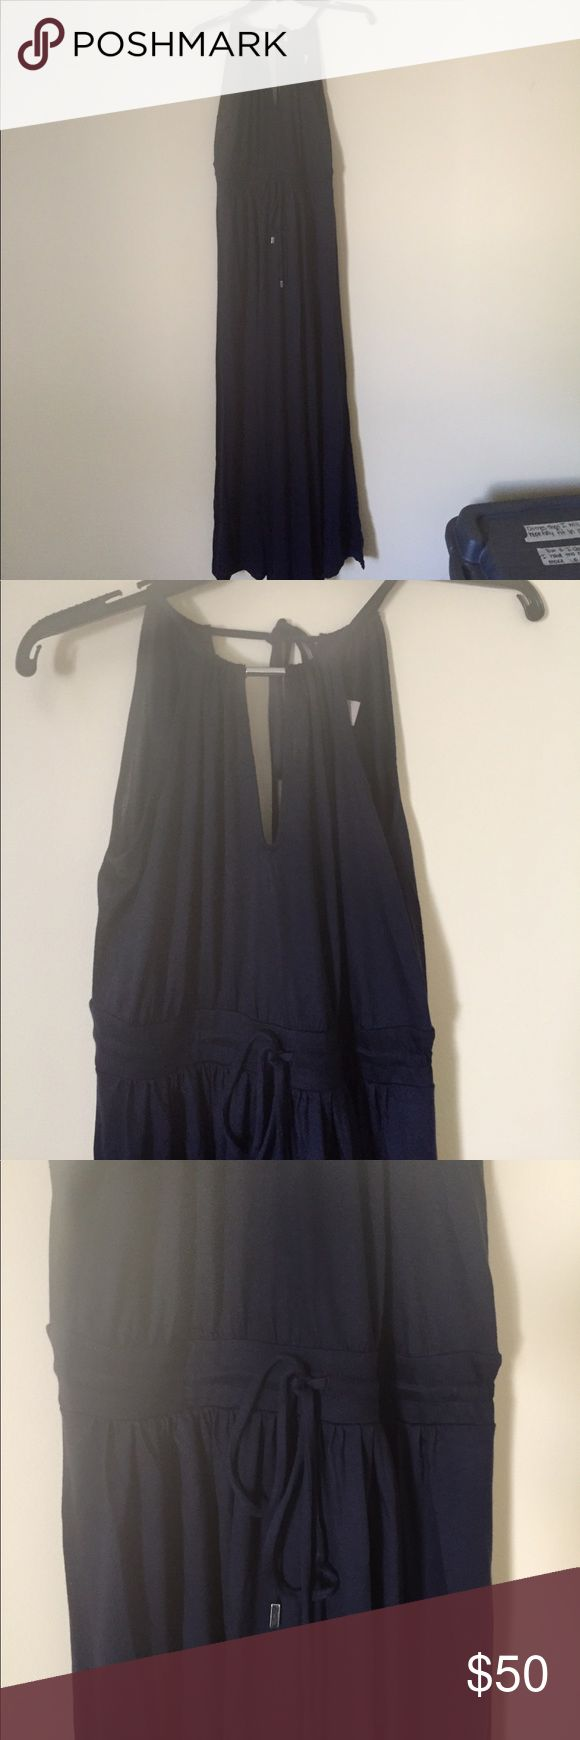 Banana Republic Navy Halter Maxi Perfect summer dress! Can either be worn to a casual or more formal event.  Cotton navy maxi dress with tie around halter neck and drawstring at waist.  Very flattering.  Like new condition I don't think that I've ever worn this.  All offers welcome. Banana Republic Dresses Maxi